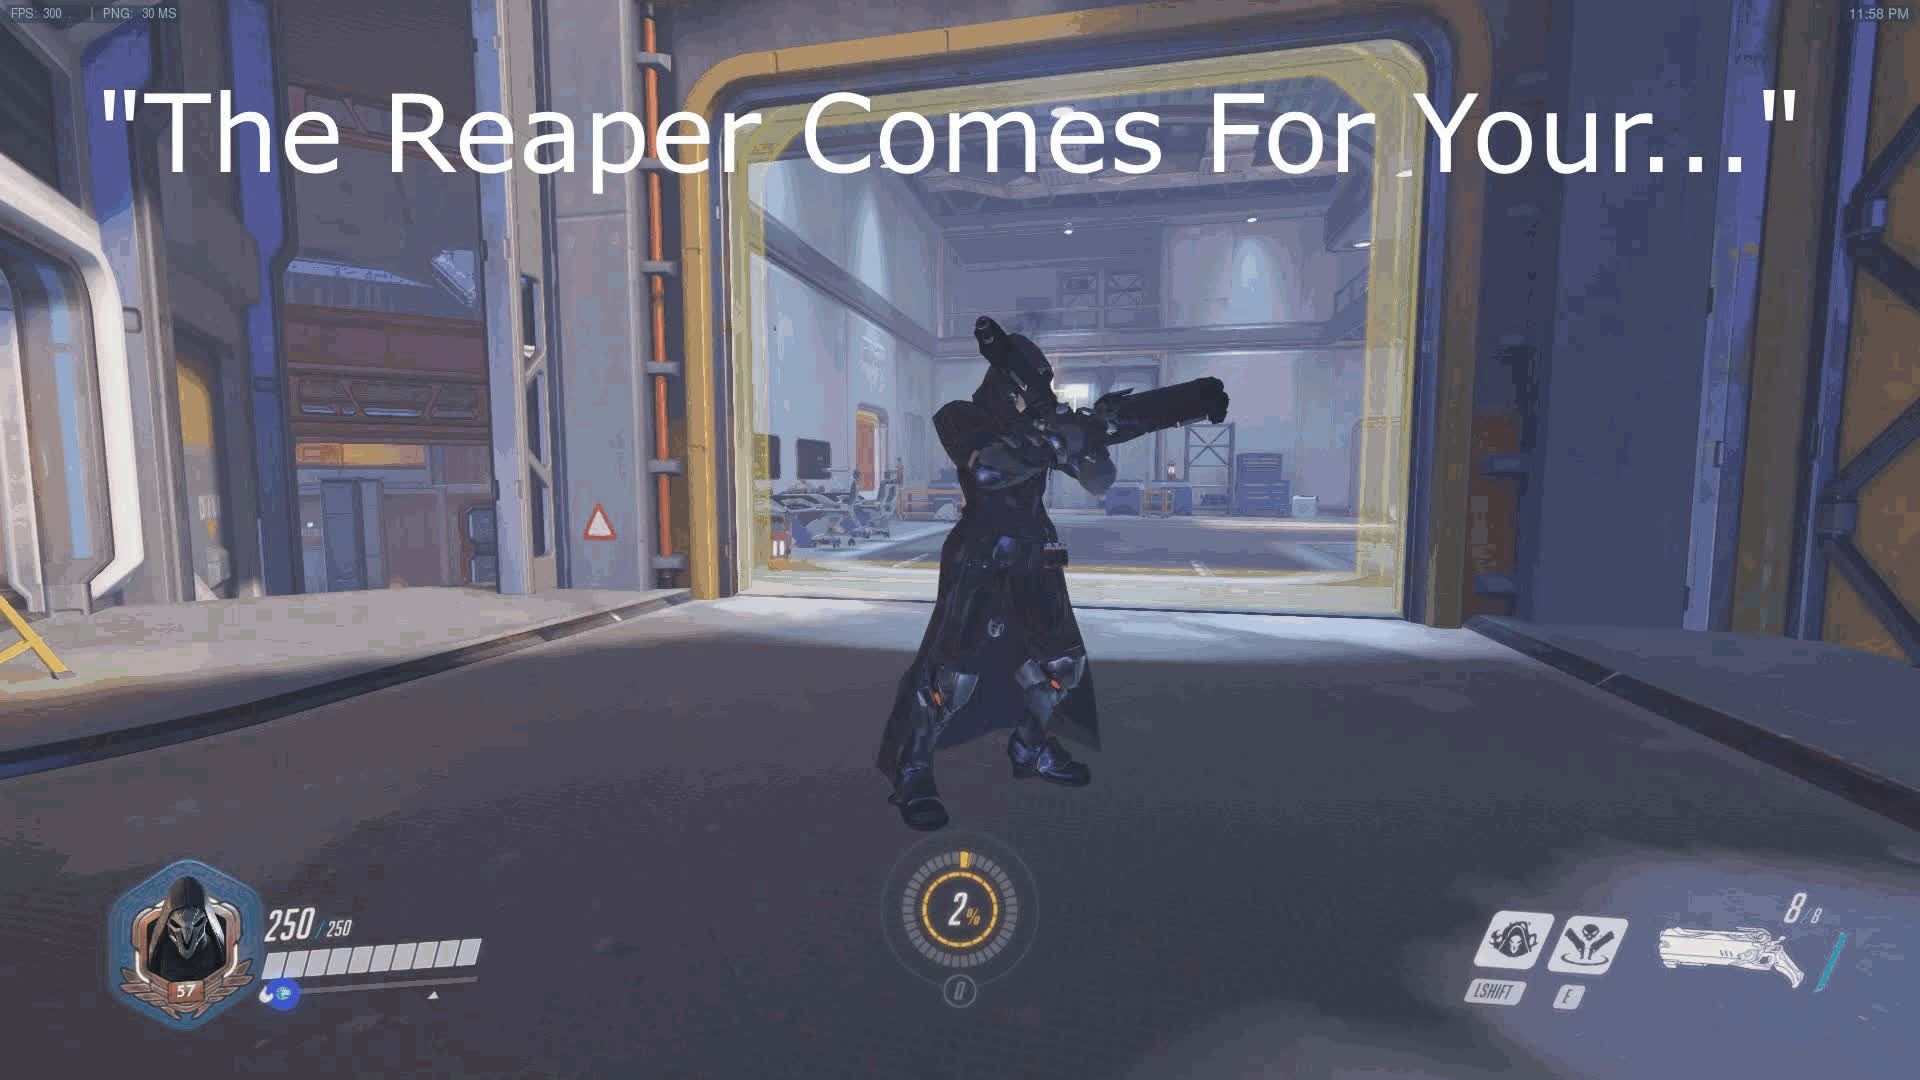 overwatch, overwatch meme, The Reaper Comes For Your.... Oh Look A Penny GIFs